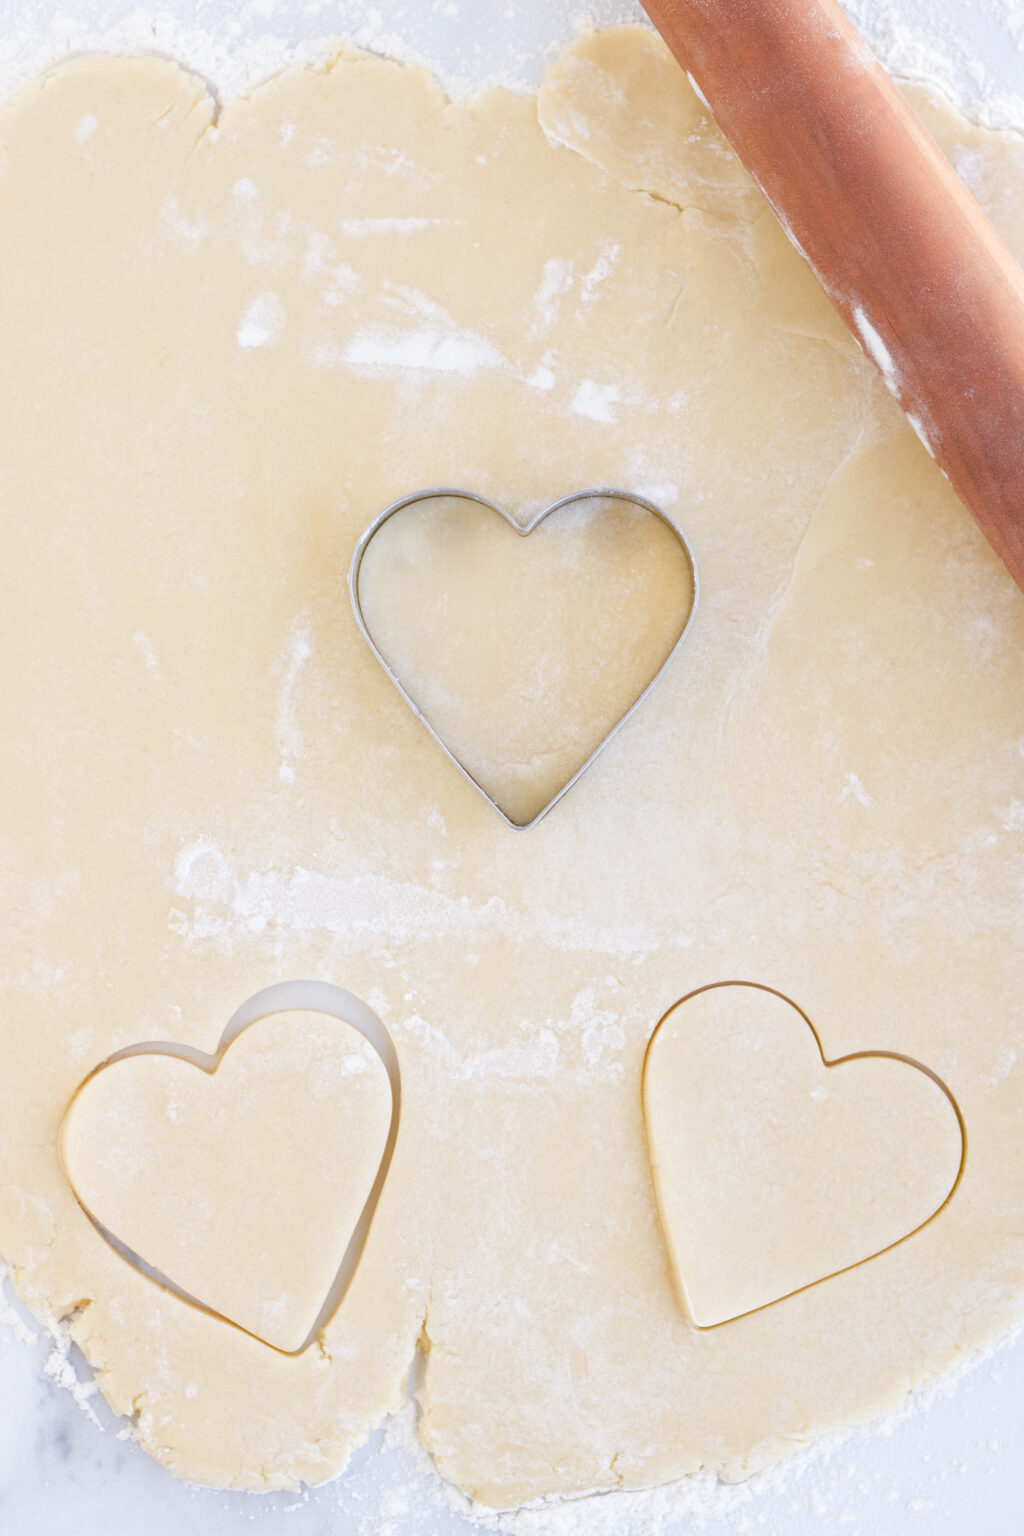 cookie dough being cut into heart shapes